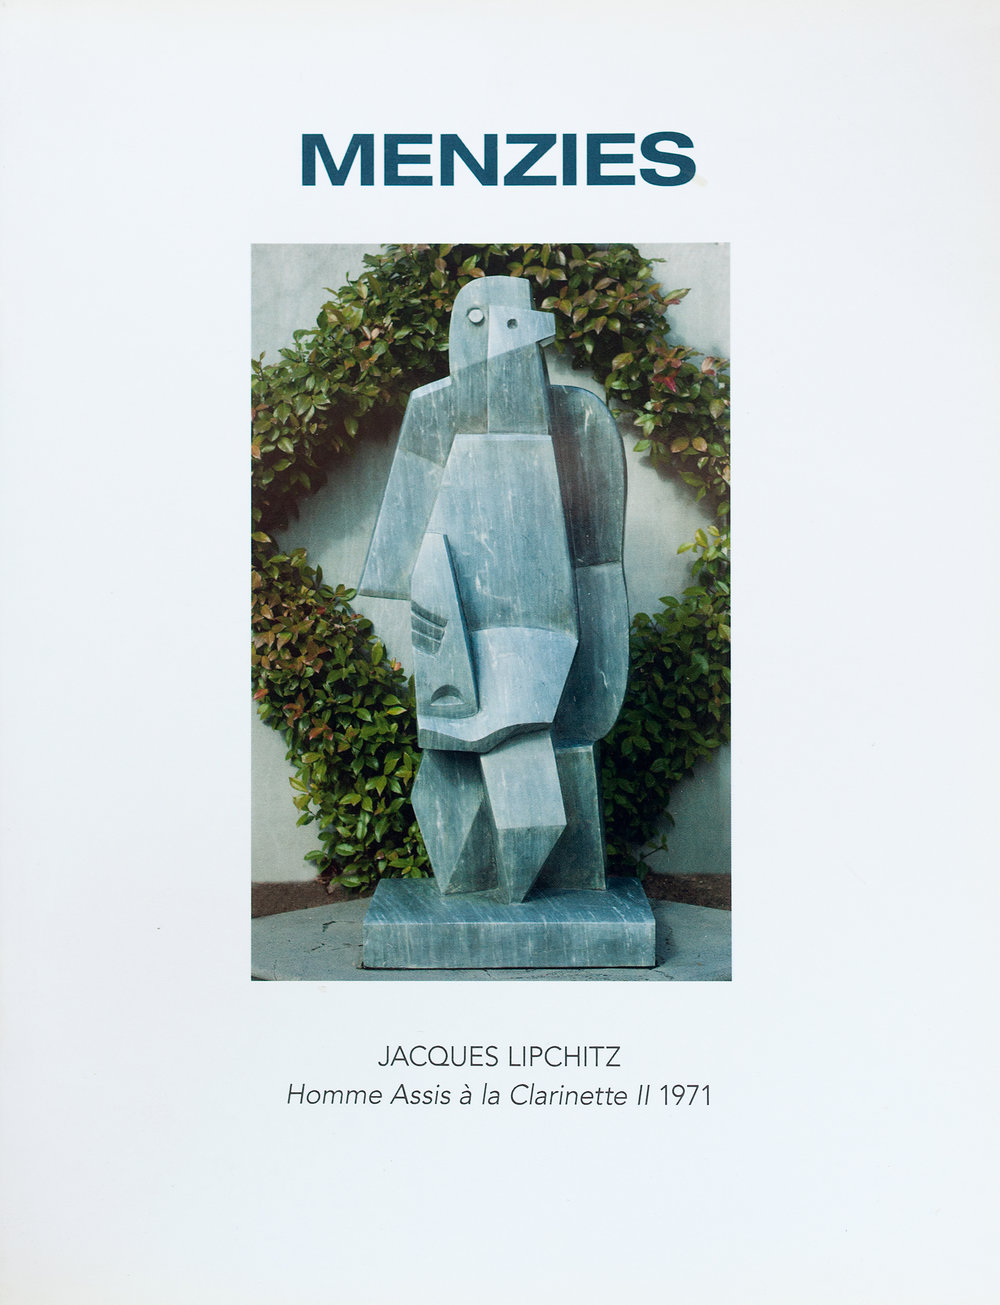 171023 Menzies Catalogues_014.jpg